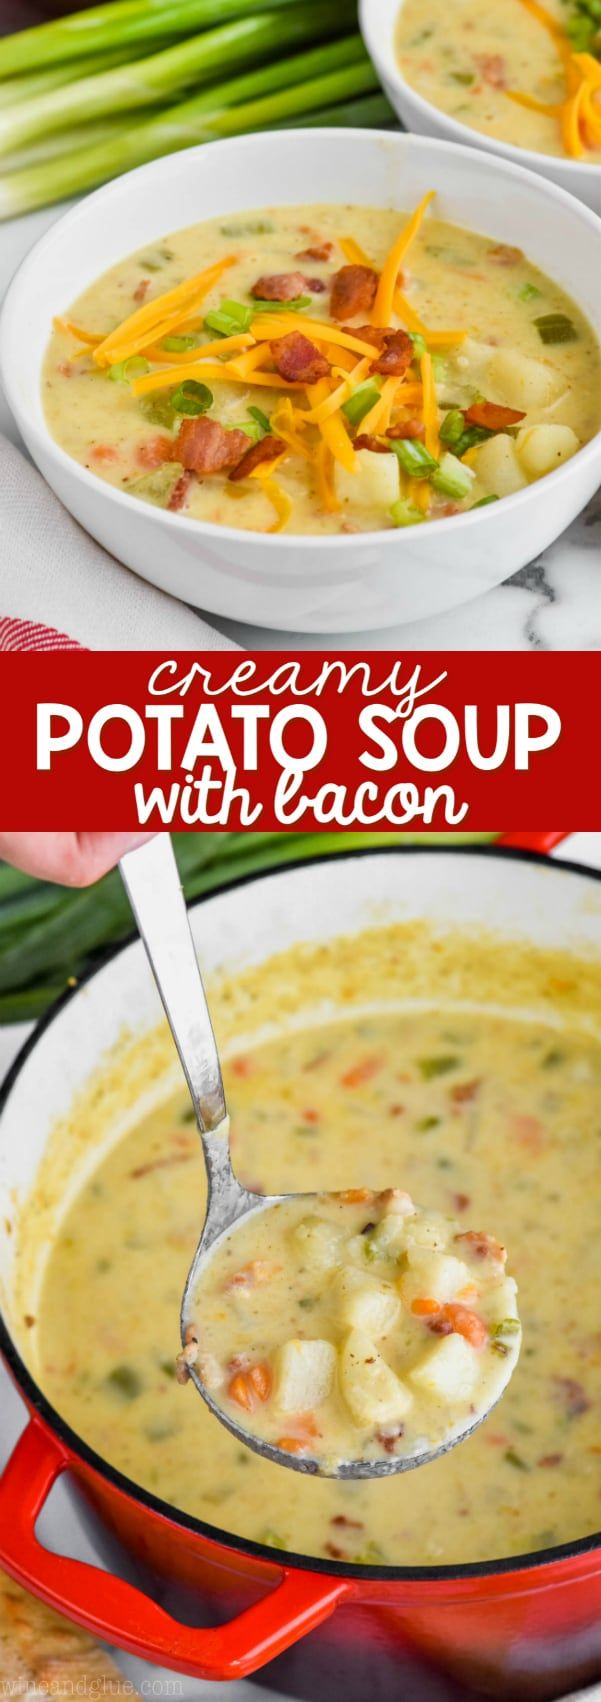 This Creamy Potato Soup with Bacon is the perfect winter soup.  Made with simpl…